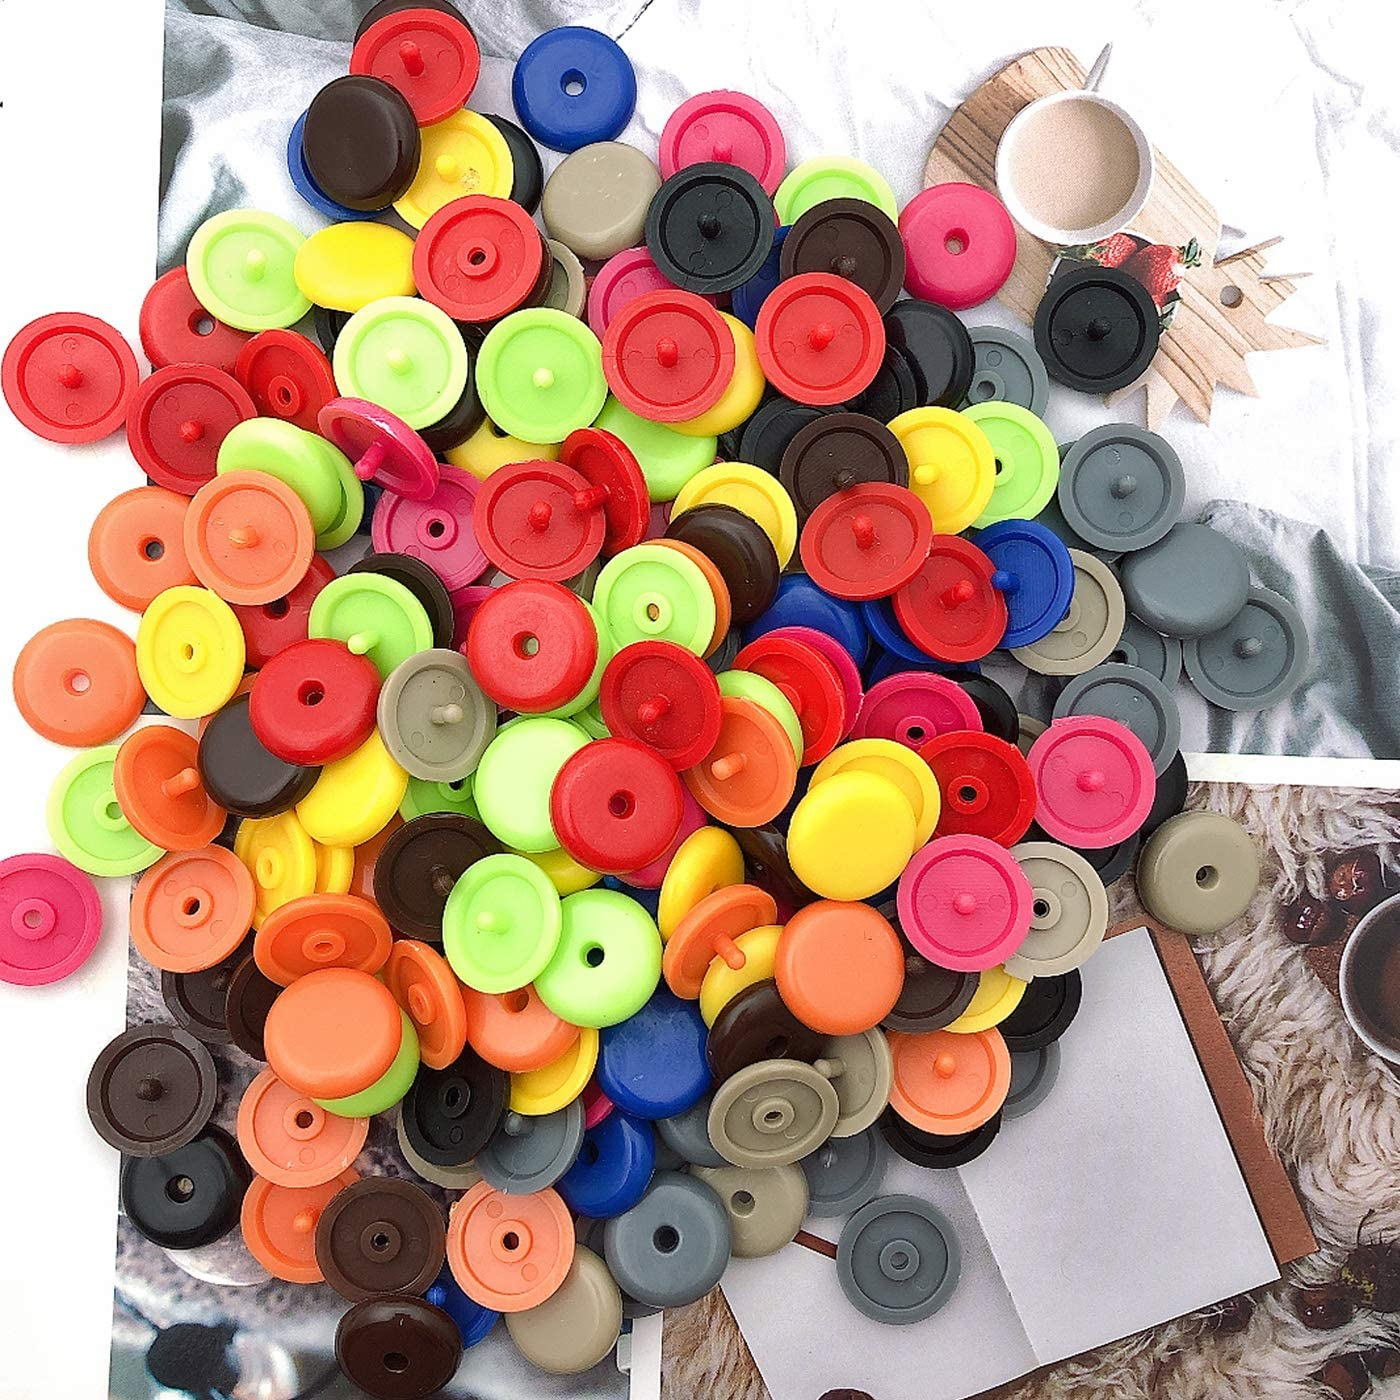 100 Sets Luckkyme Button Buckle Clip Stop The Belt Plastic Seat-Belt Stopper Clips Snap-On System No Welding Required